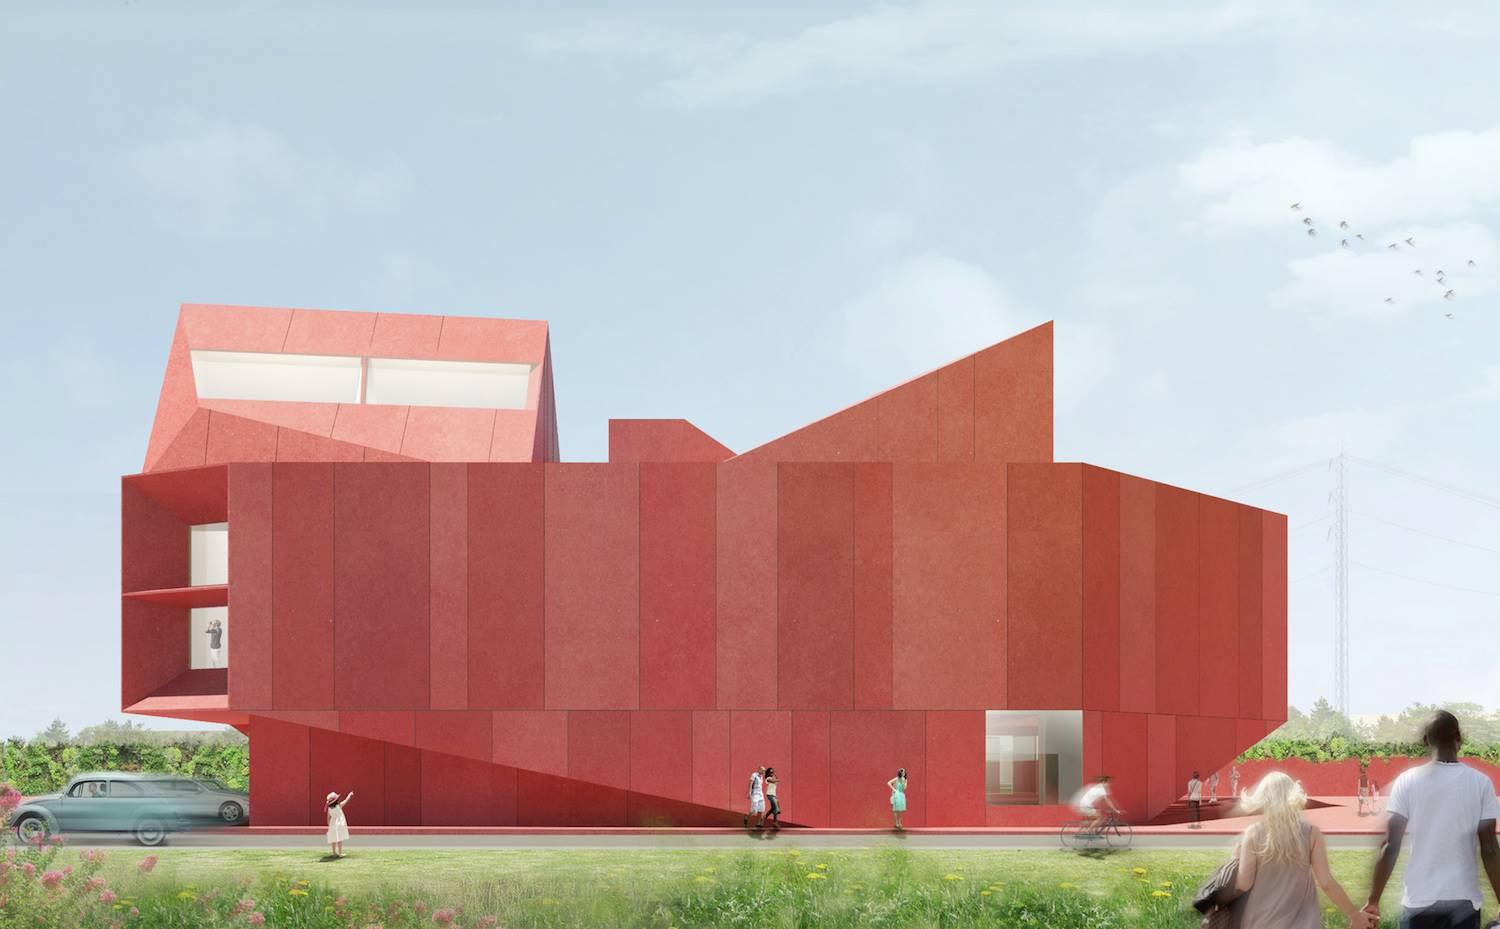 Ruby city for Linda Pace David Adjaye Associates. [03] Ruby city for Linda Pace, por David Adjaye. San Antonio (Texas)